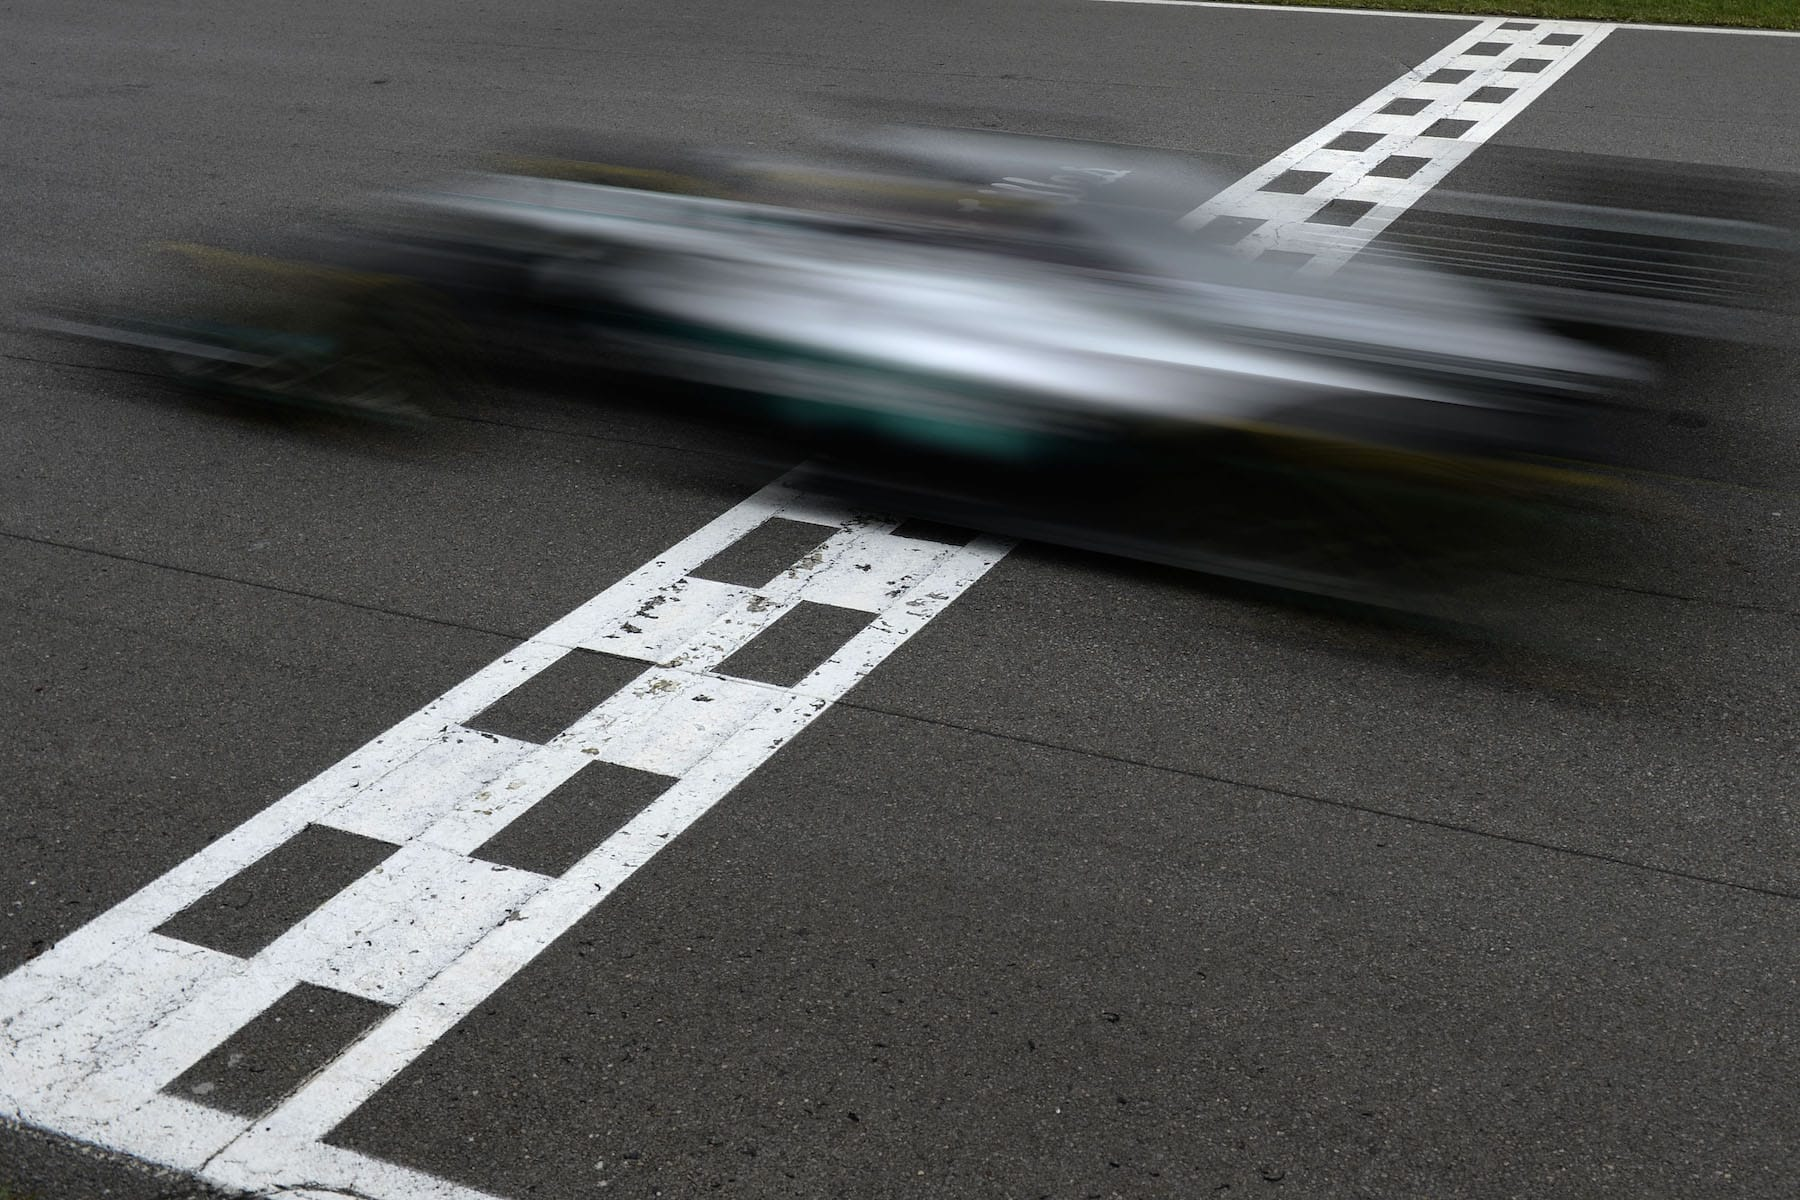 Salracing - Lewis Hamilton crossing the finish line at speed